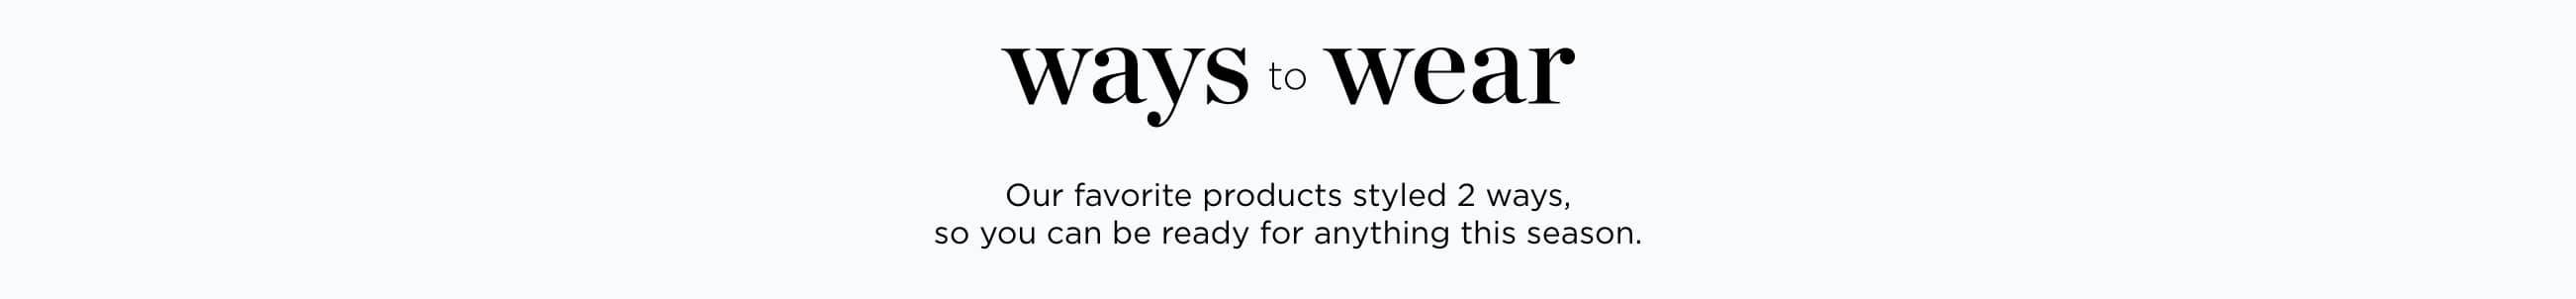 Ways to Wear: Our favorite products styled two ways, so you can be ready for anything this season.